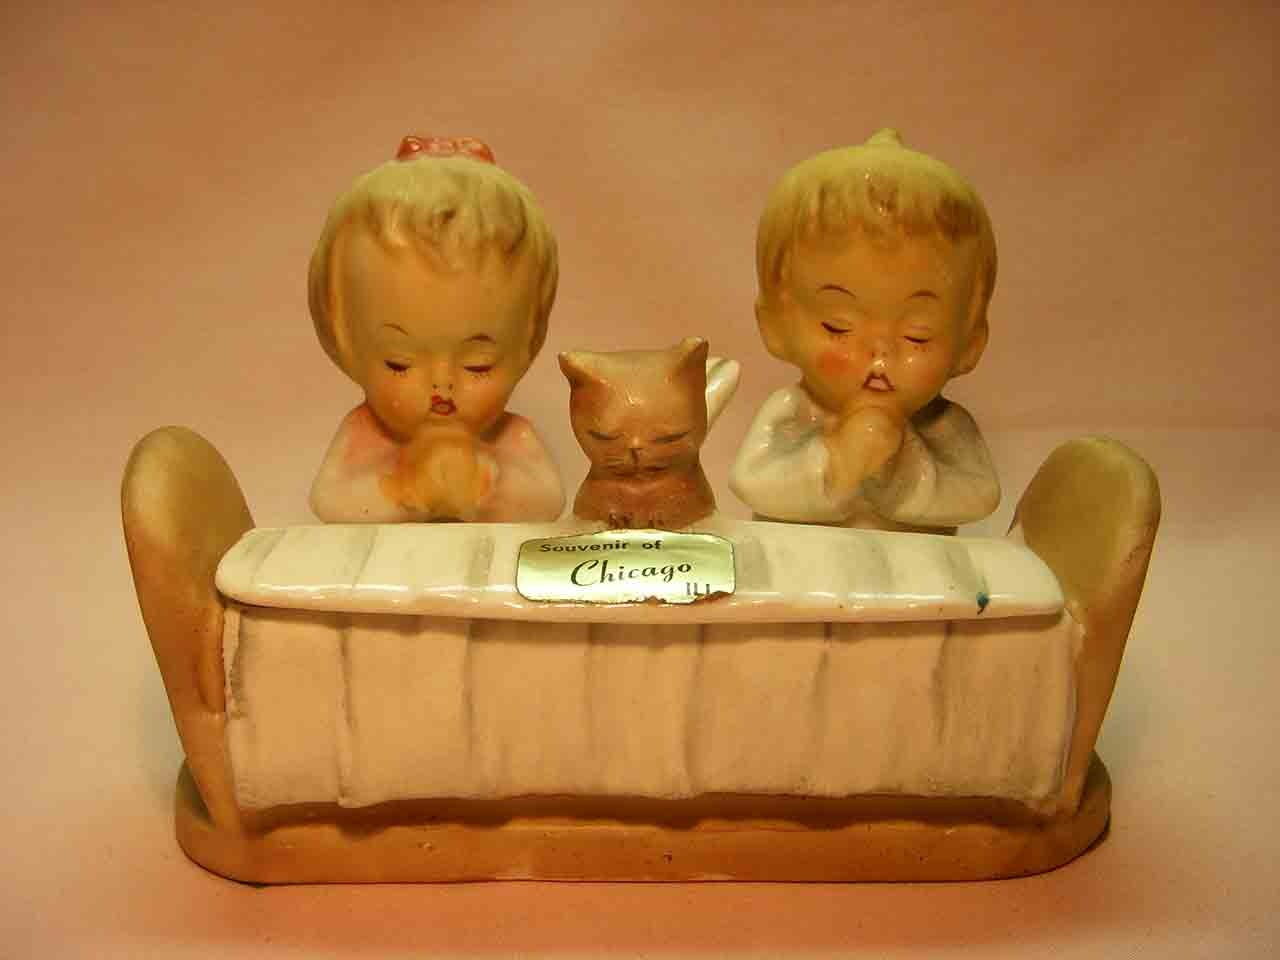 Bedtime prayer salt and pepper shakers and condiment set